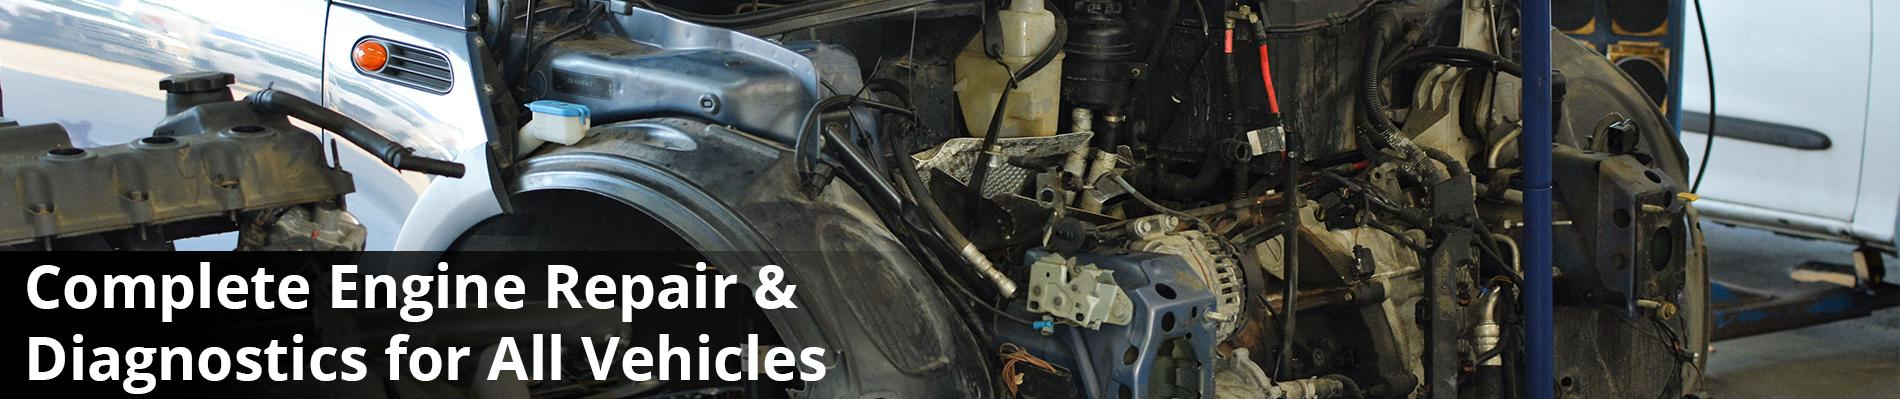 Brakes, Suspension, Engines and Transmissions - We Really Do It All!